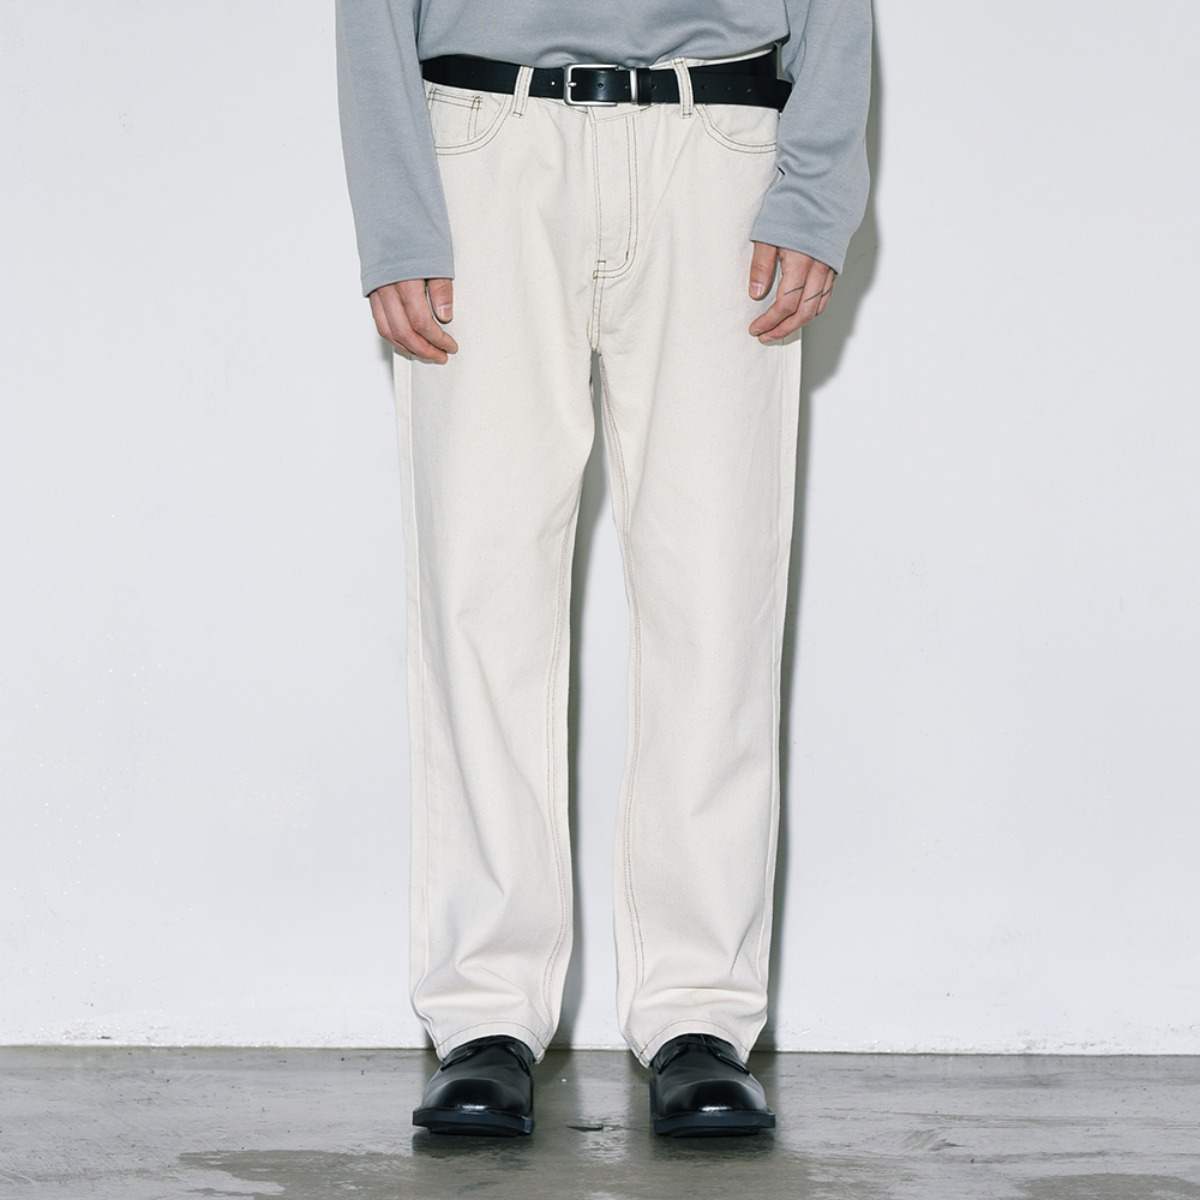 Contrast Stitched Cotton Pants - Natural Beige